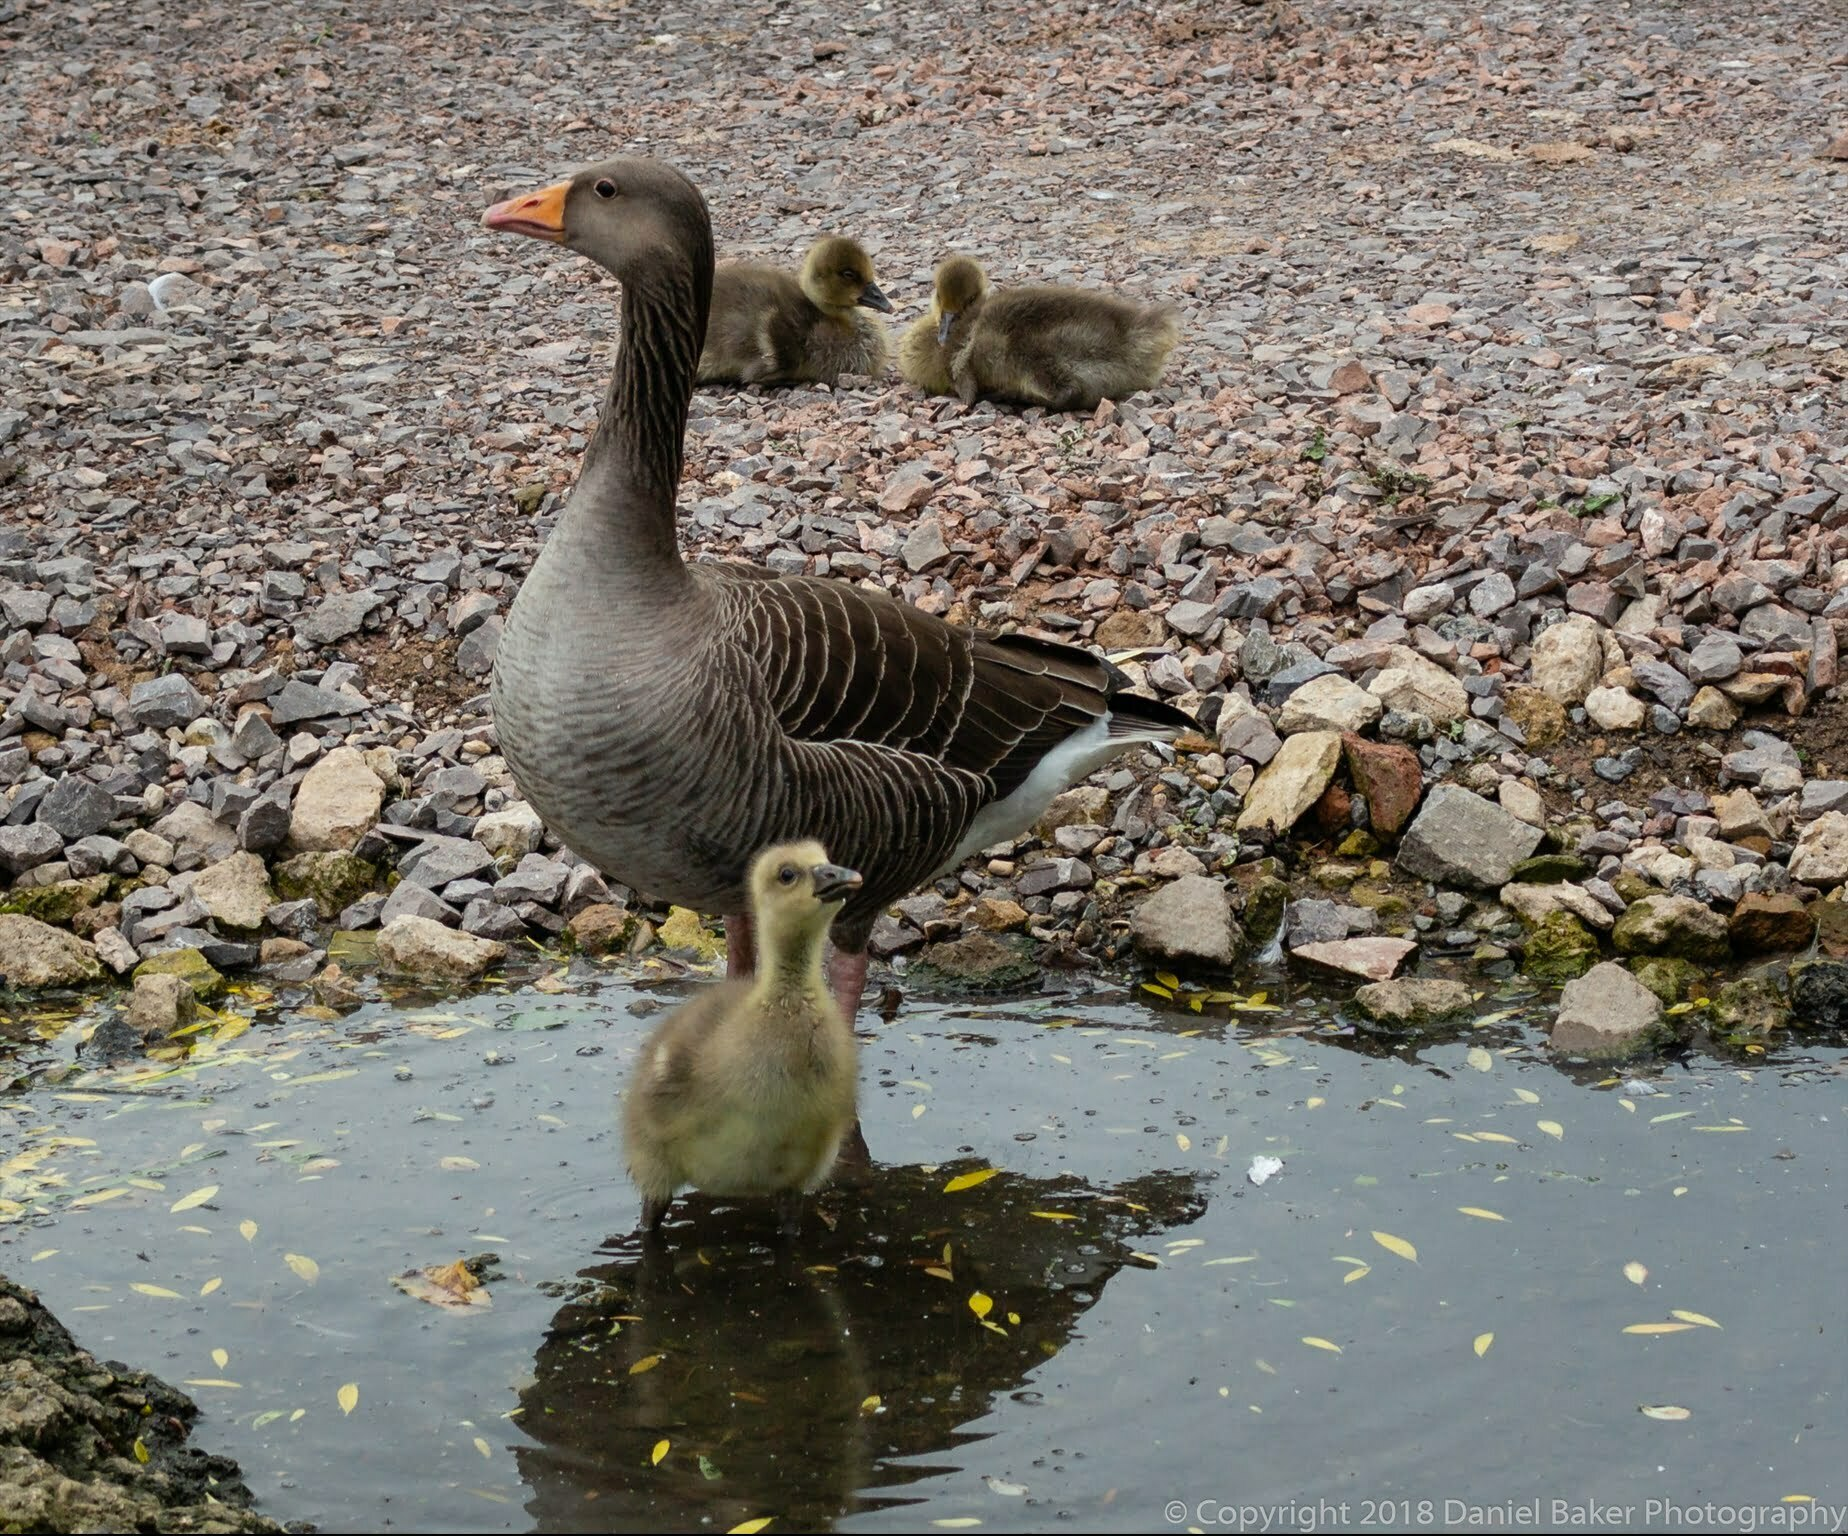 A mother goose with her goslings